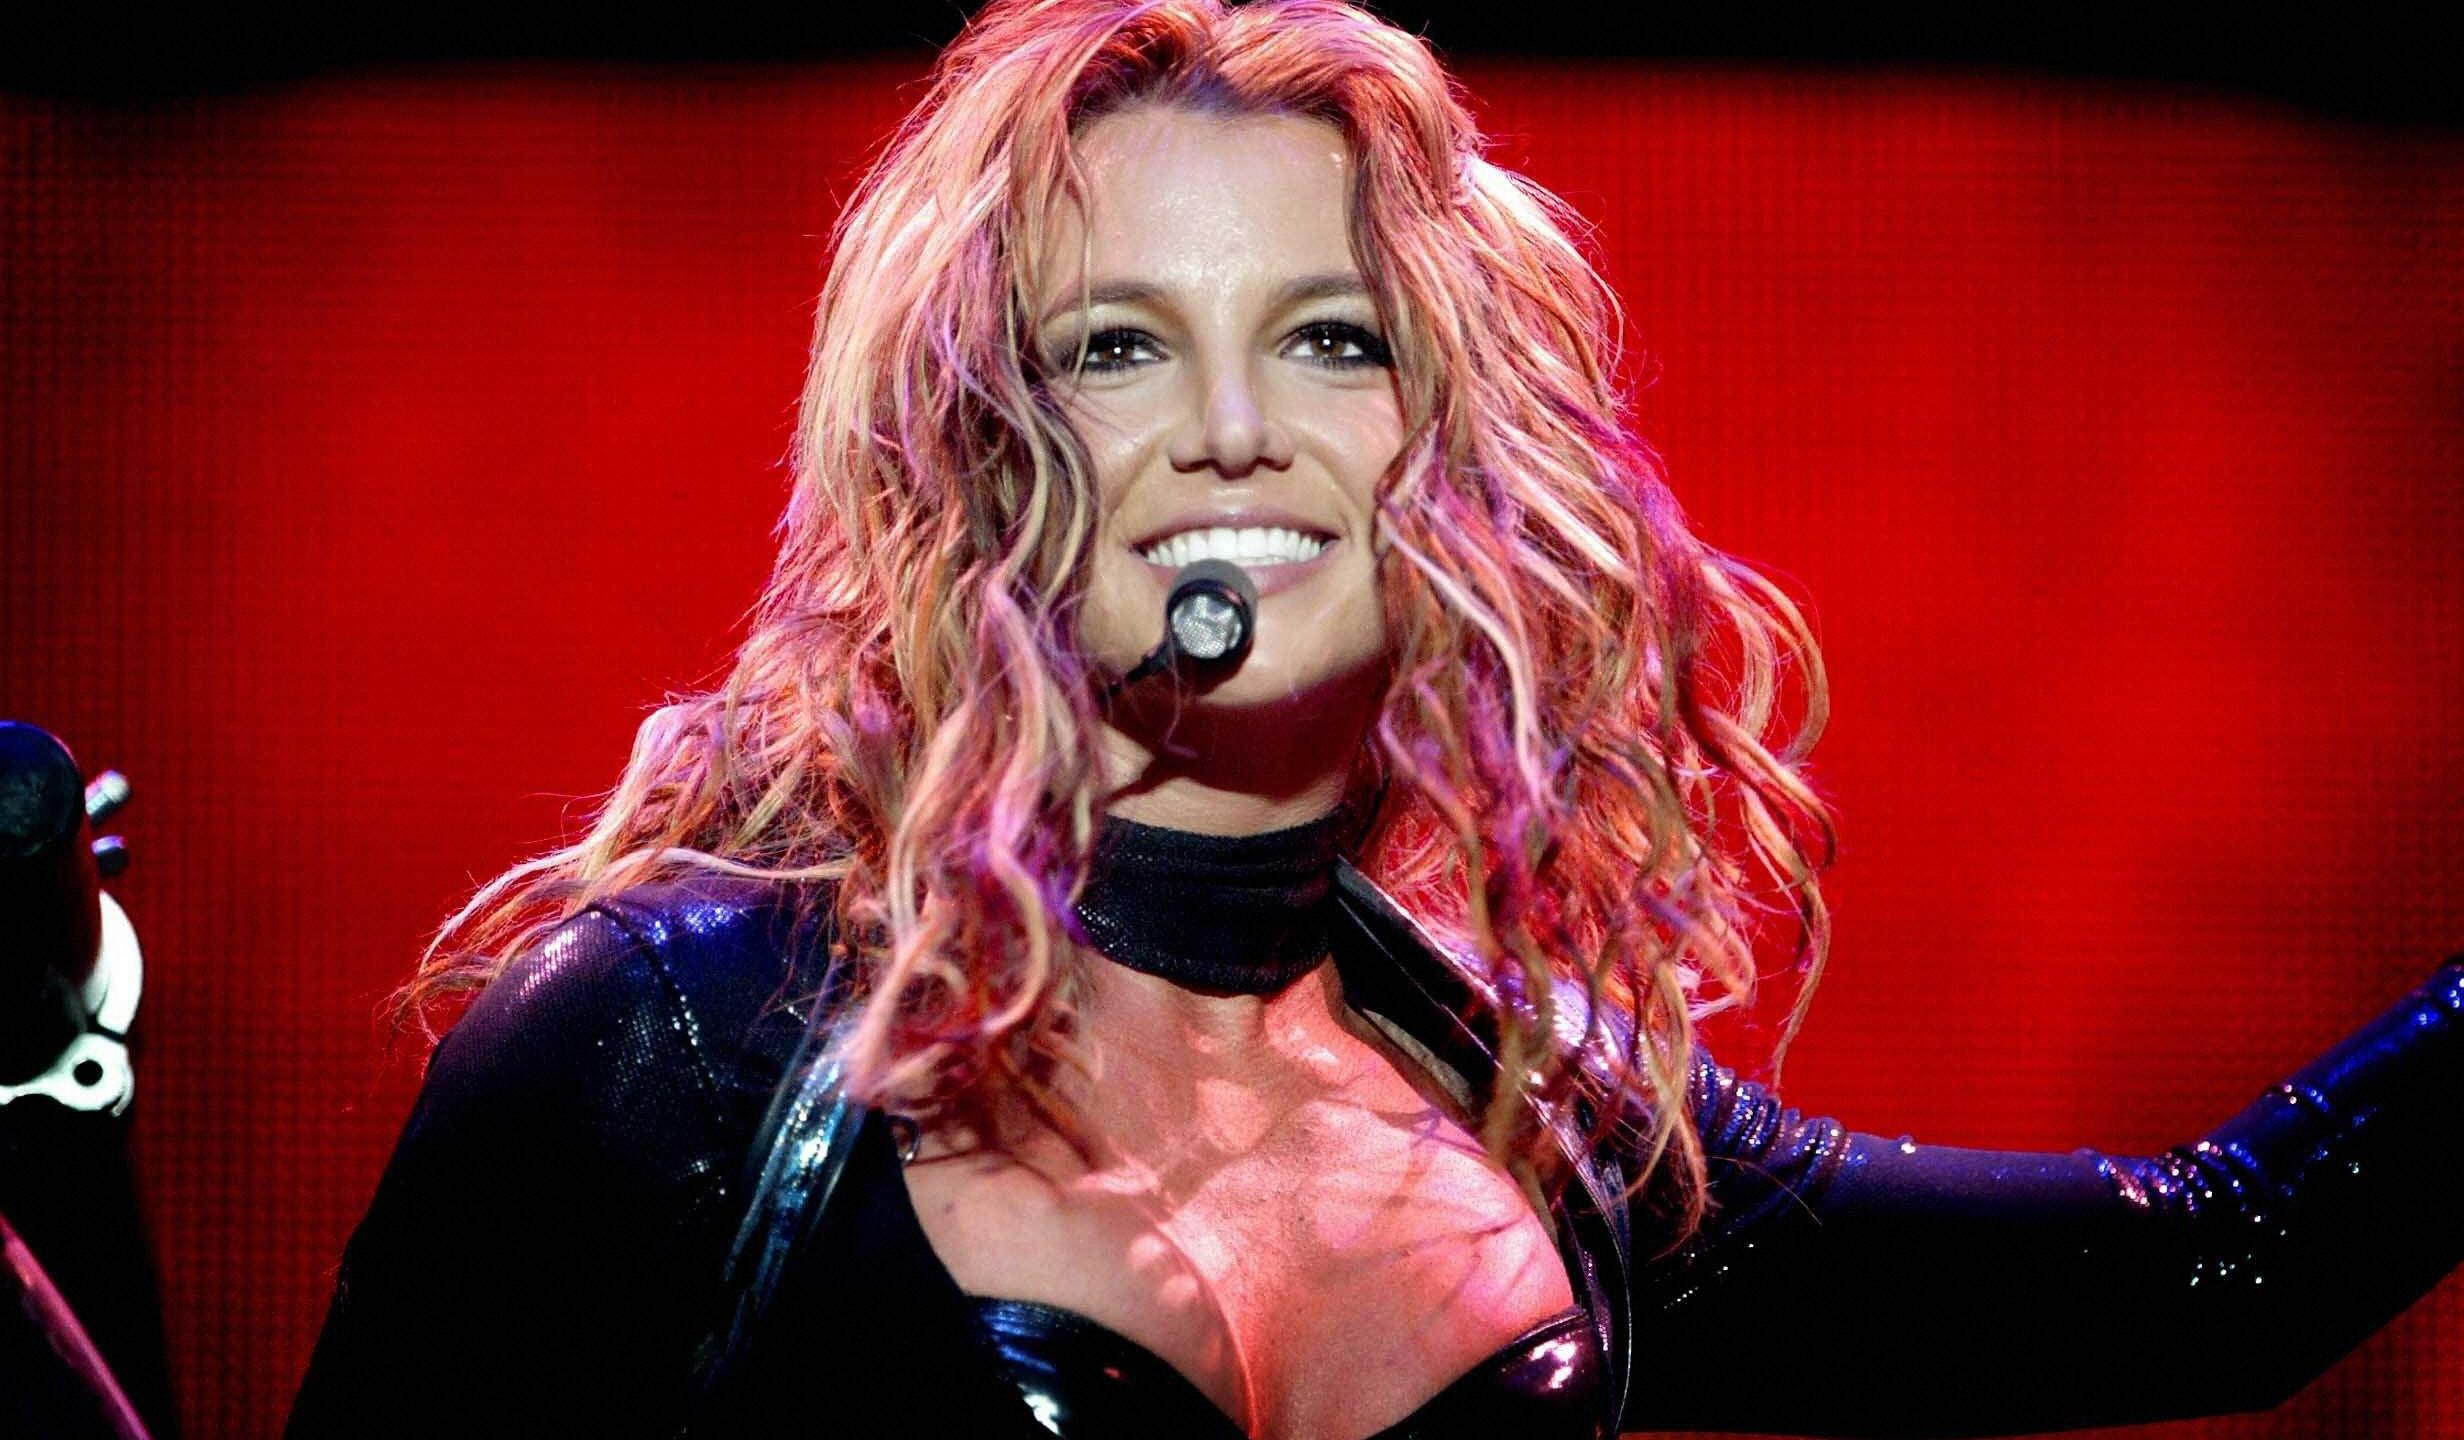 Britney Spears performs in Rotterdam, the Netherlands, on May 7, 2004. (AFP via Getty Images)